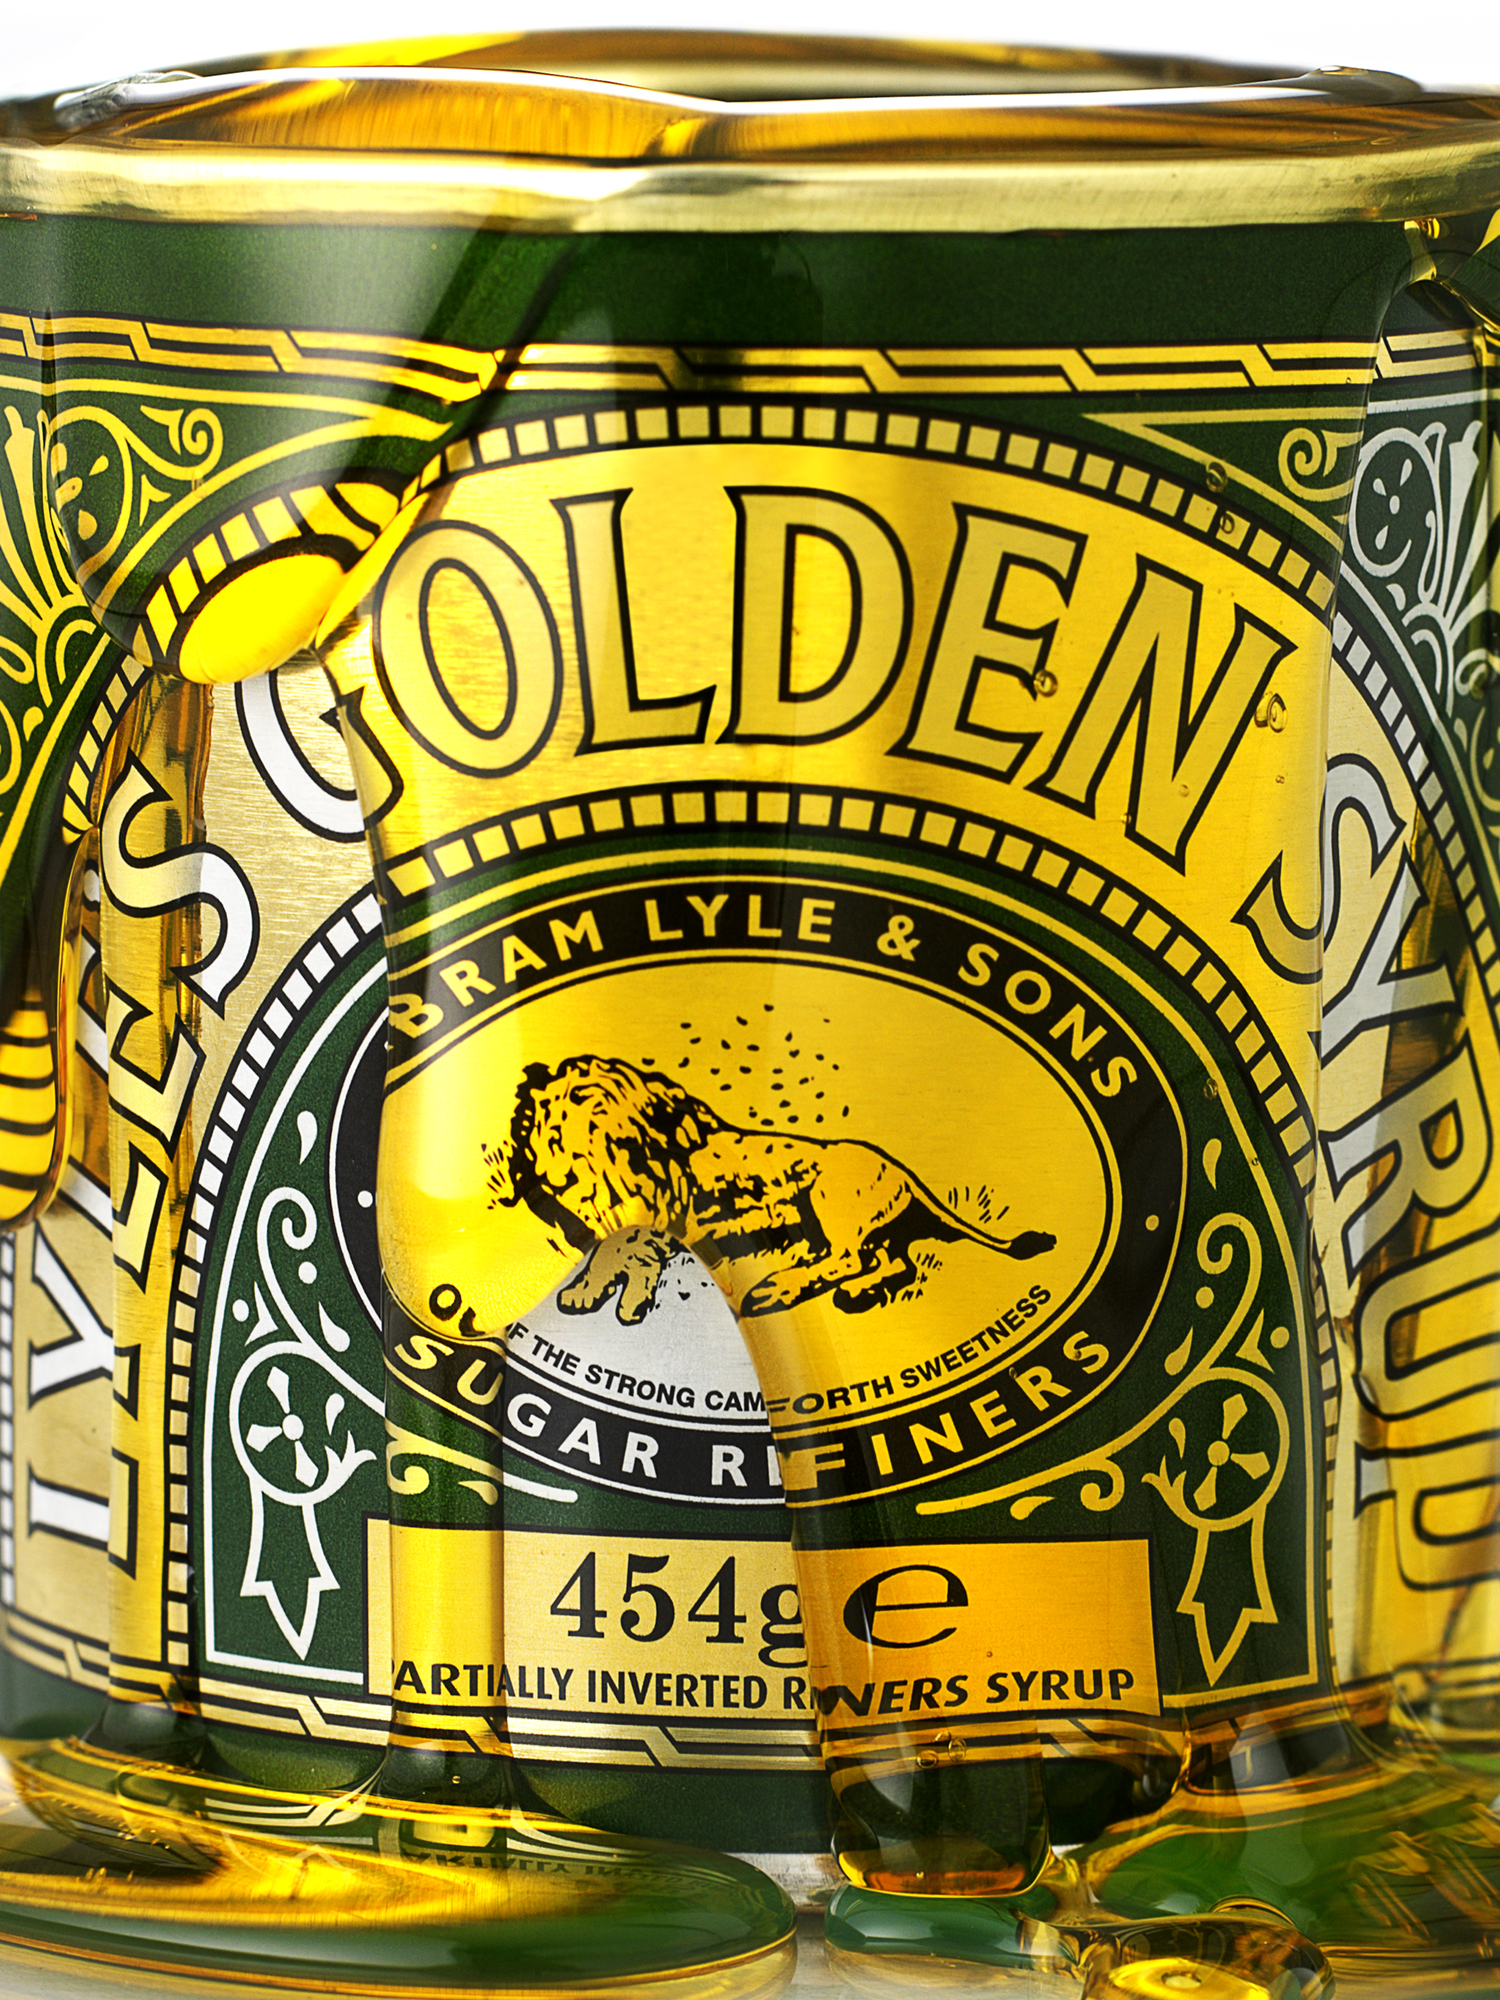 food photography london food photographer london recipe advertising cook book cook editorial packaging design graphic bold bright vibrant lighting lit flash photoshop syrup lyles golden lyle pour mess drip pouring lion tin macro close up personal work drink